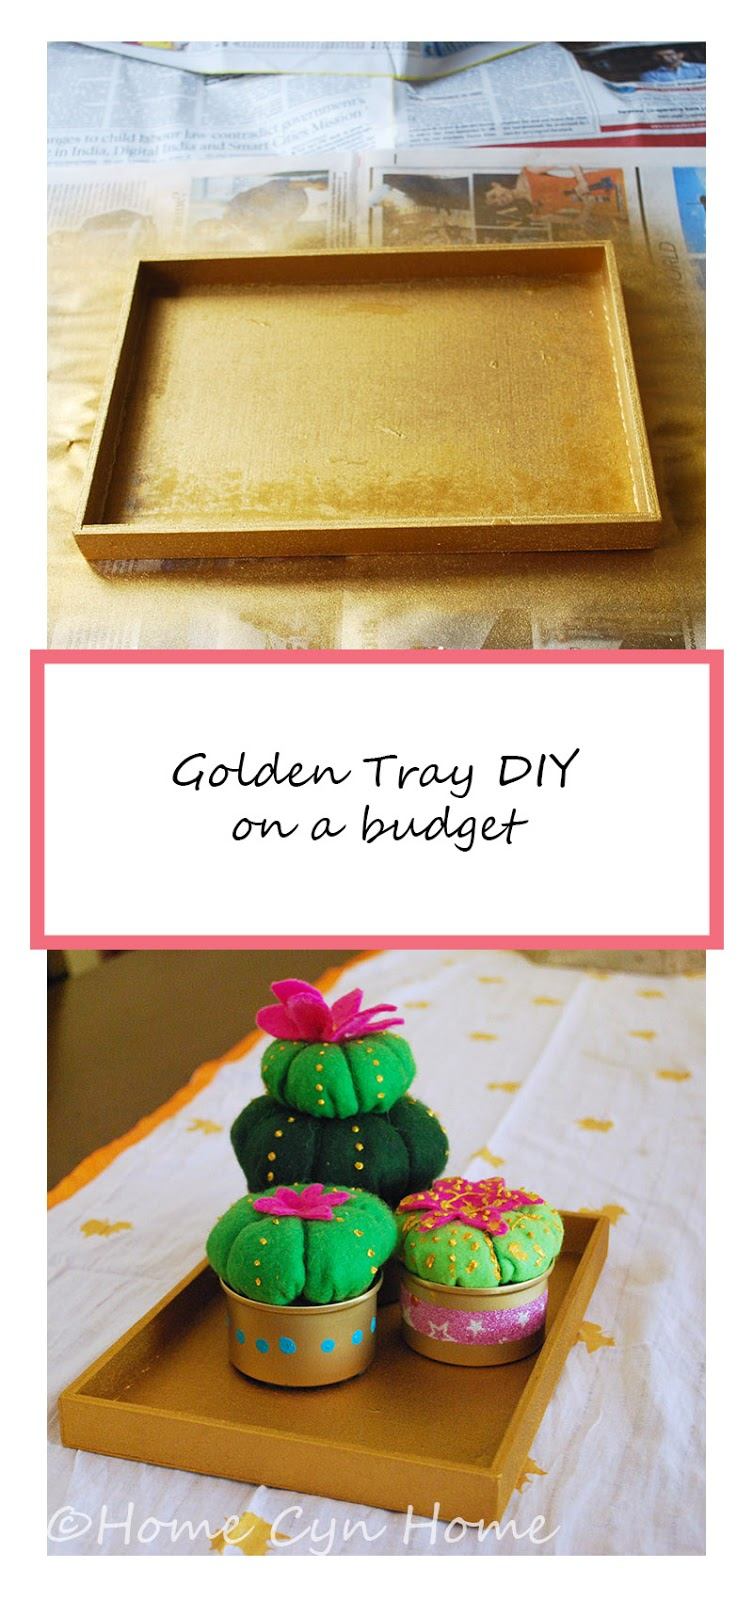 Turn an old wooden box or lid into a stylish gold tray with a little spray paint